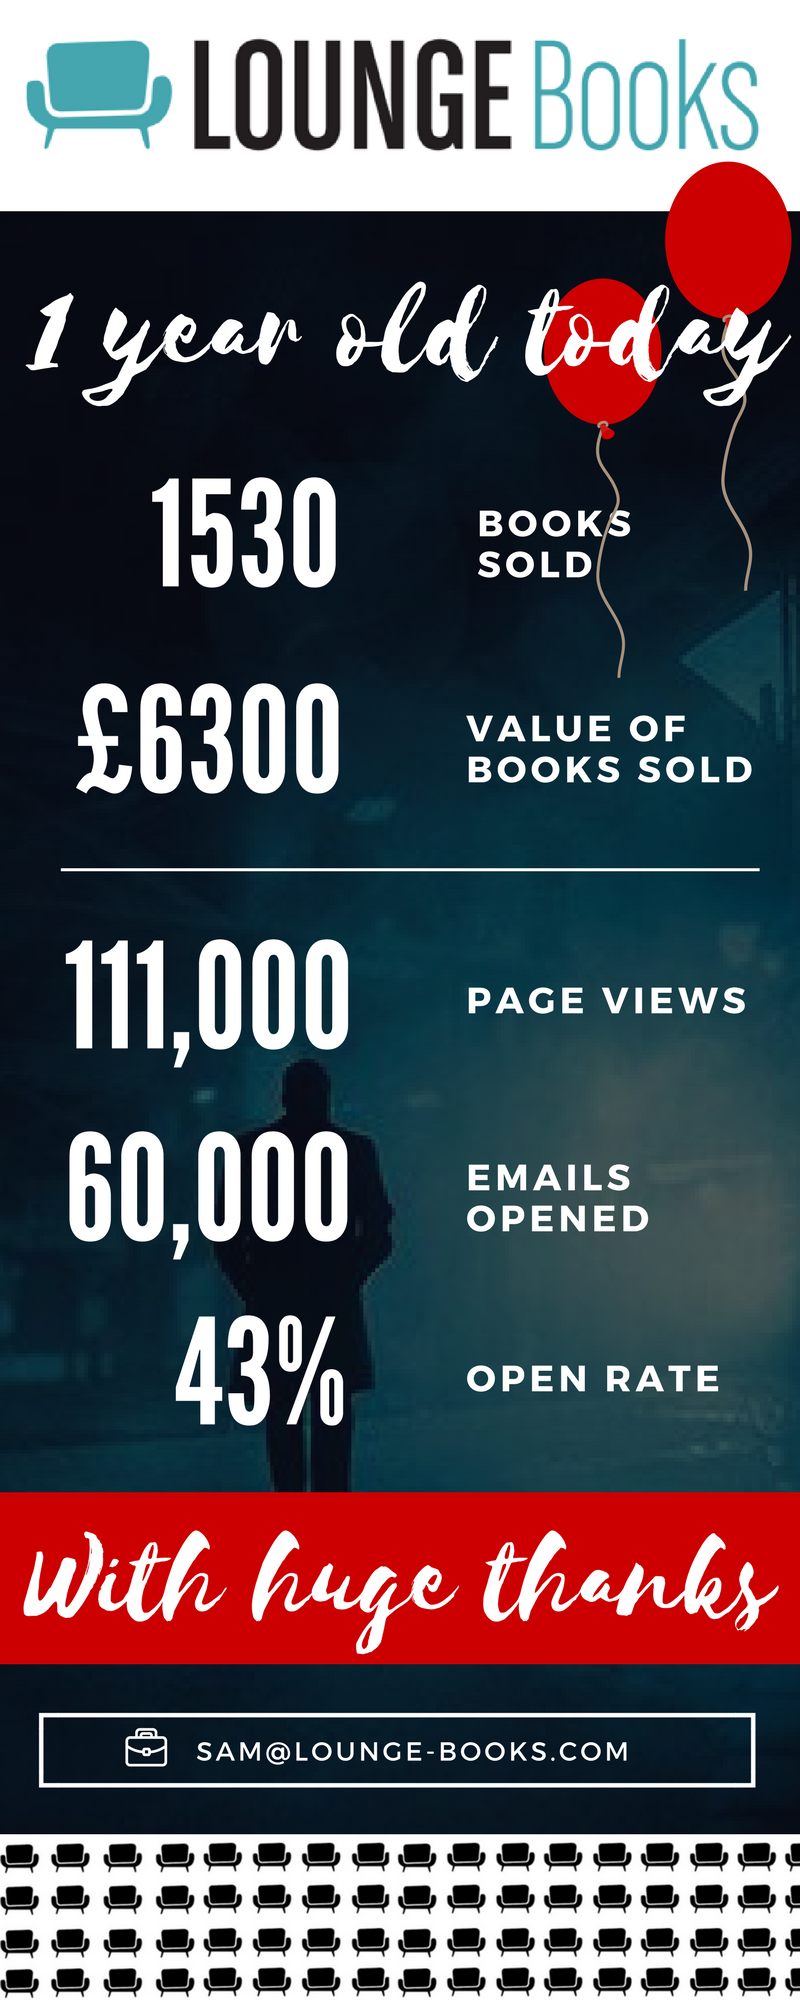 LB - Lounge Books 1 year old today birthday infographic-2.png